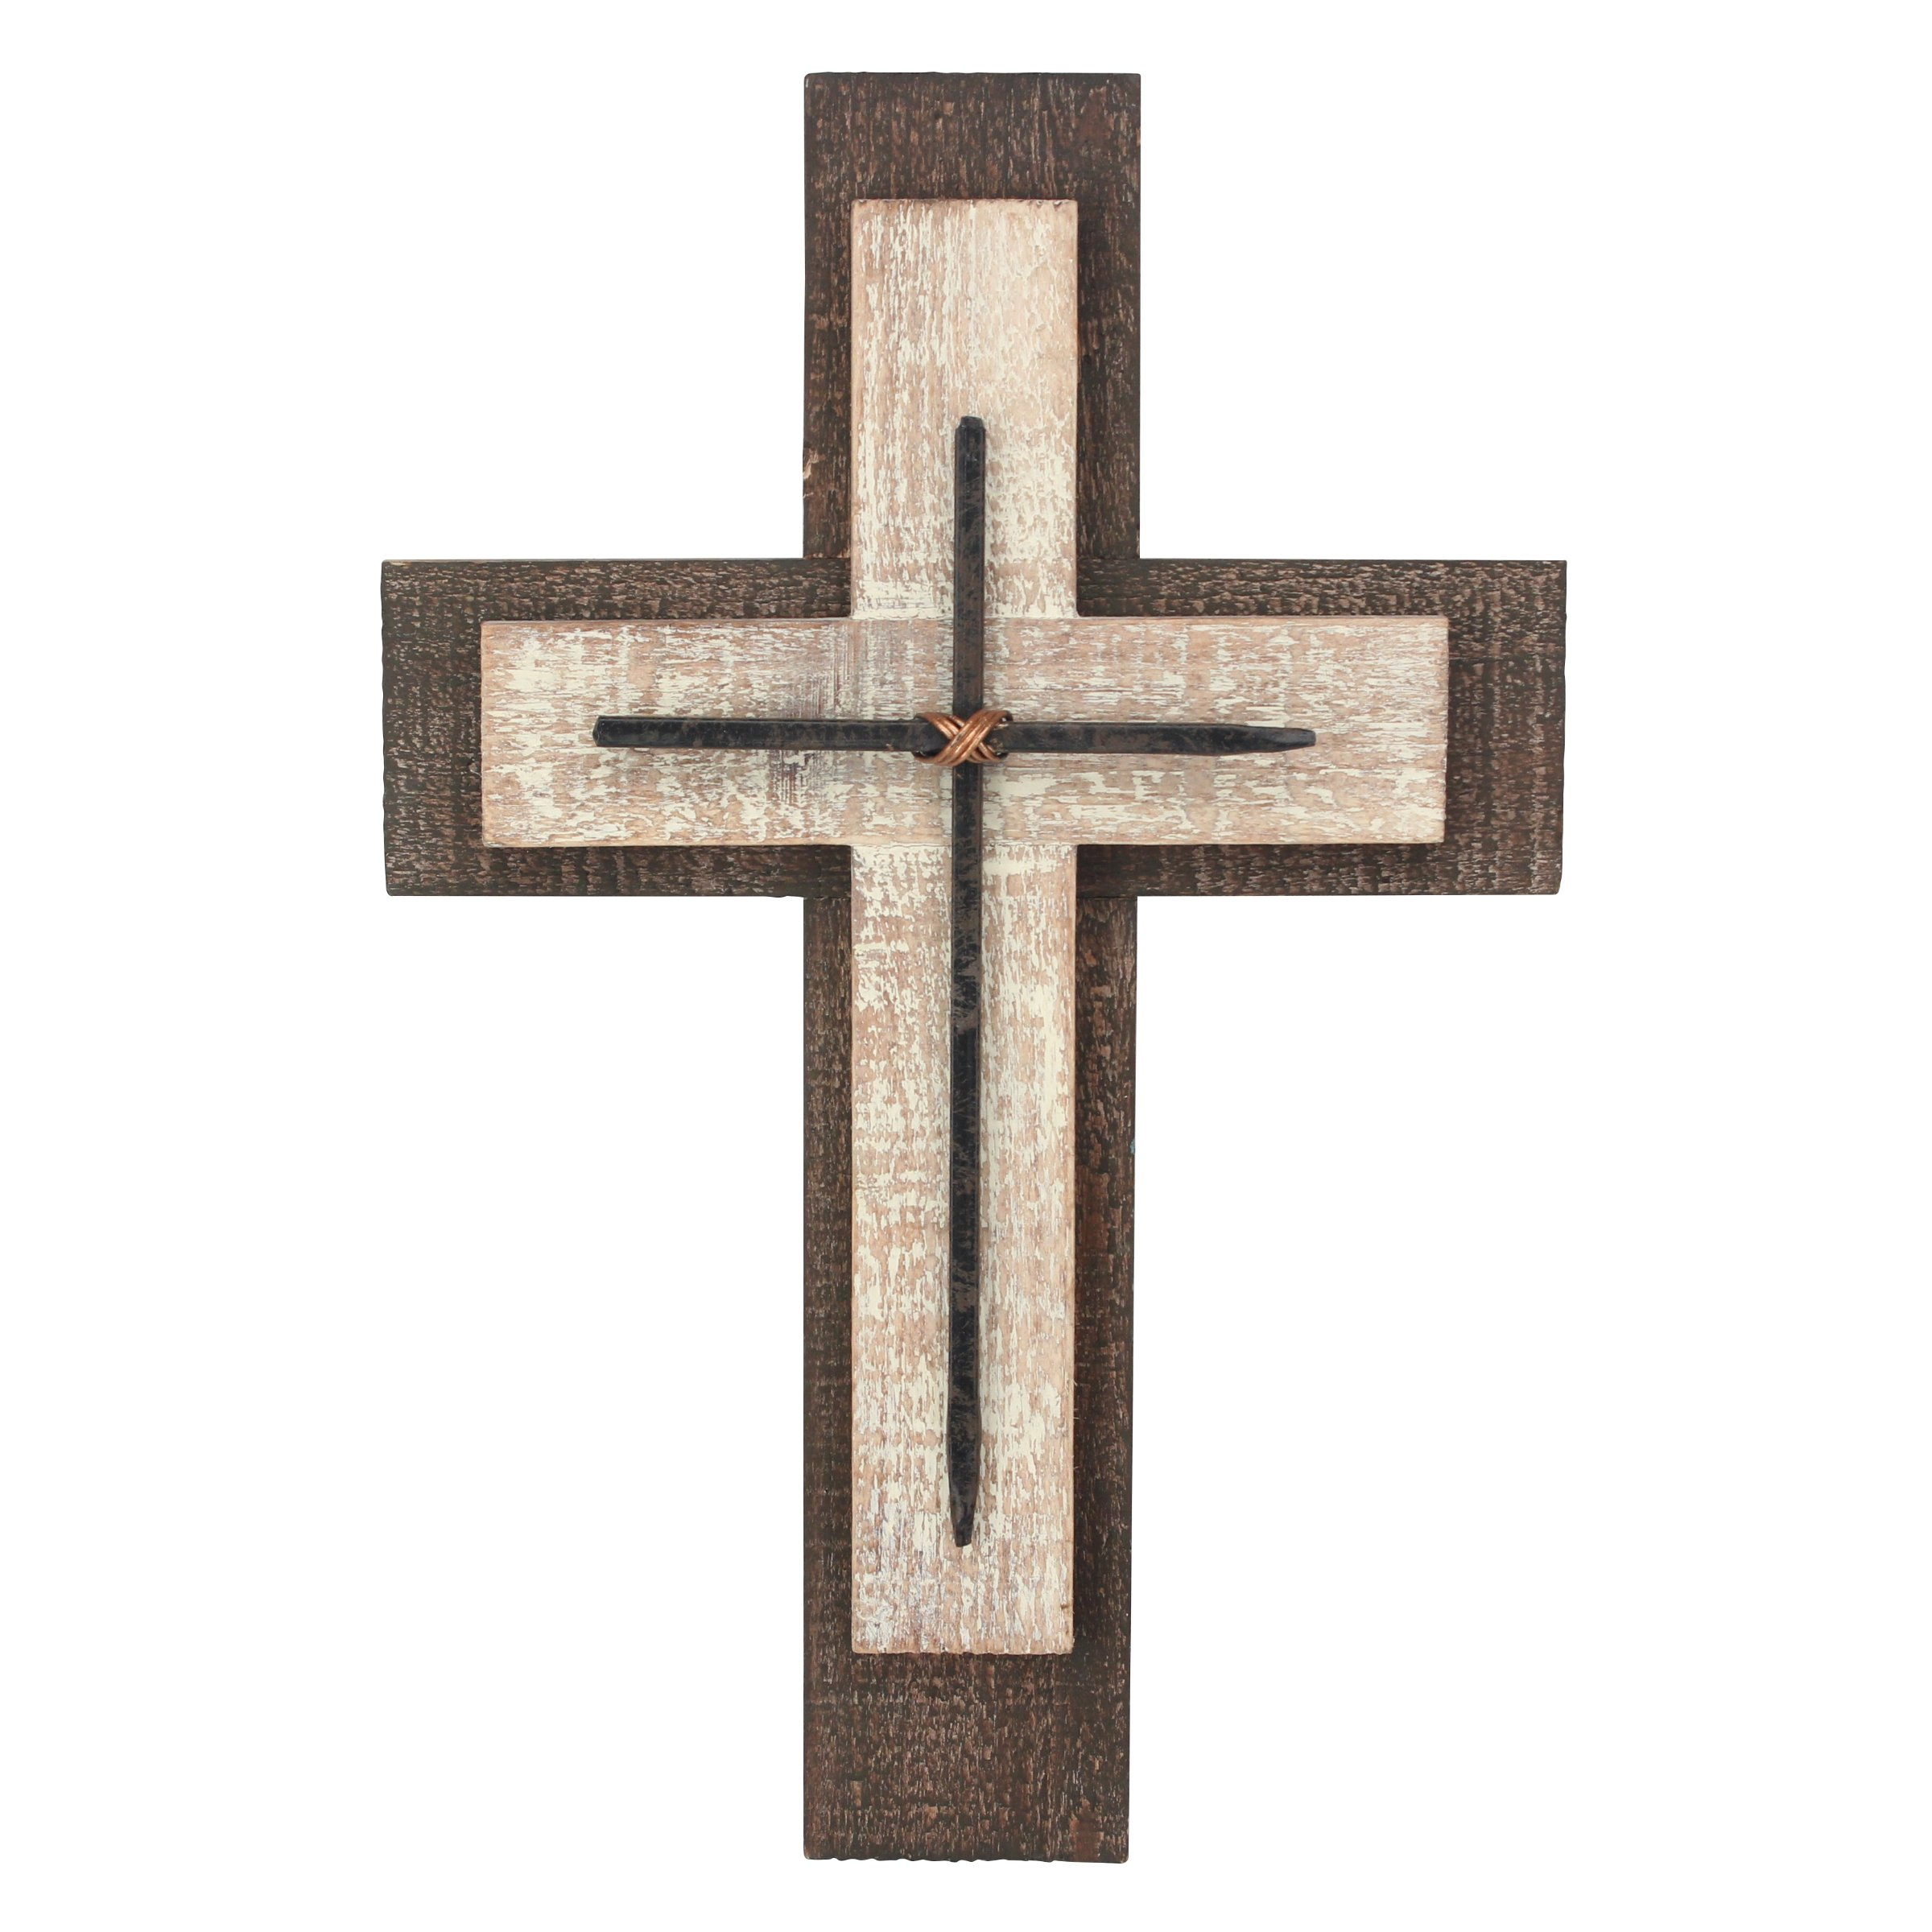 Decorative Worn White and Brown Wooden Hanging Wall Cross, Rustic Cross for Wall of Crosses, Religious Home Decor, Gift…